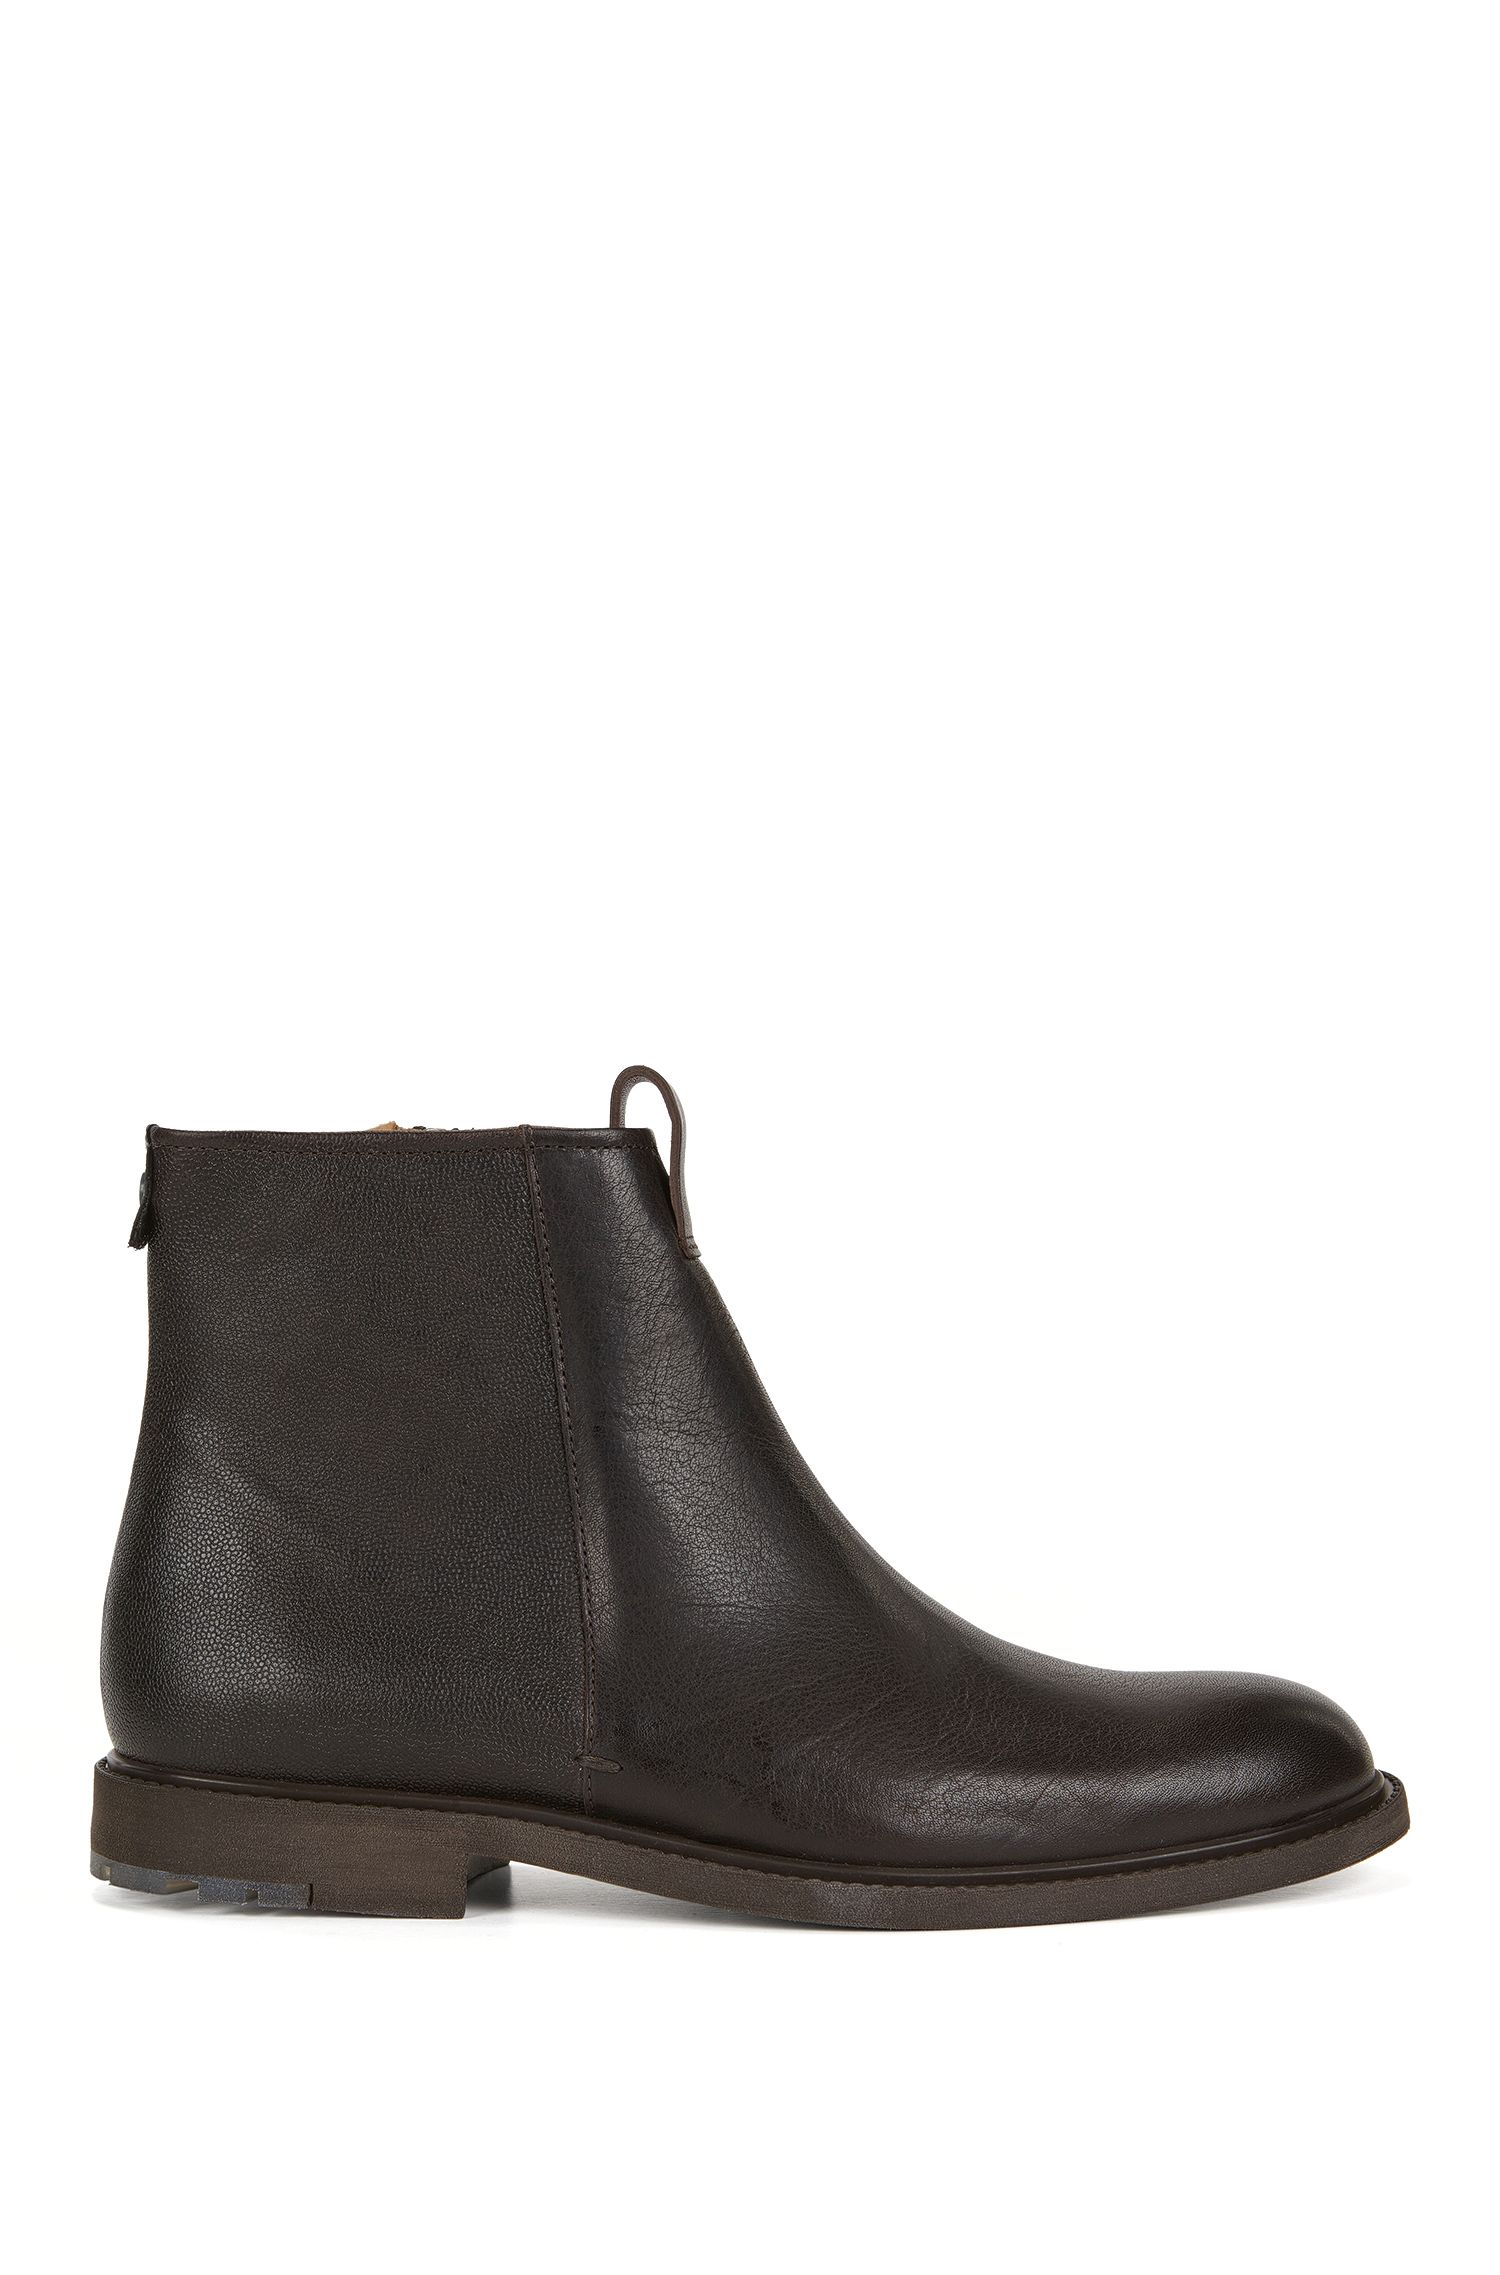 Leather Ankle Boot | Cultroot Zipb Itwsgr, Dark Brown